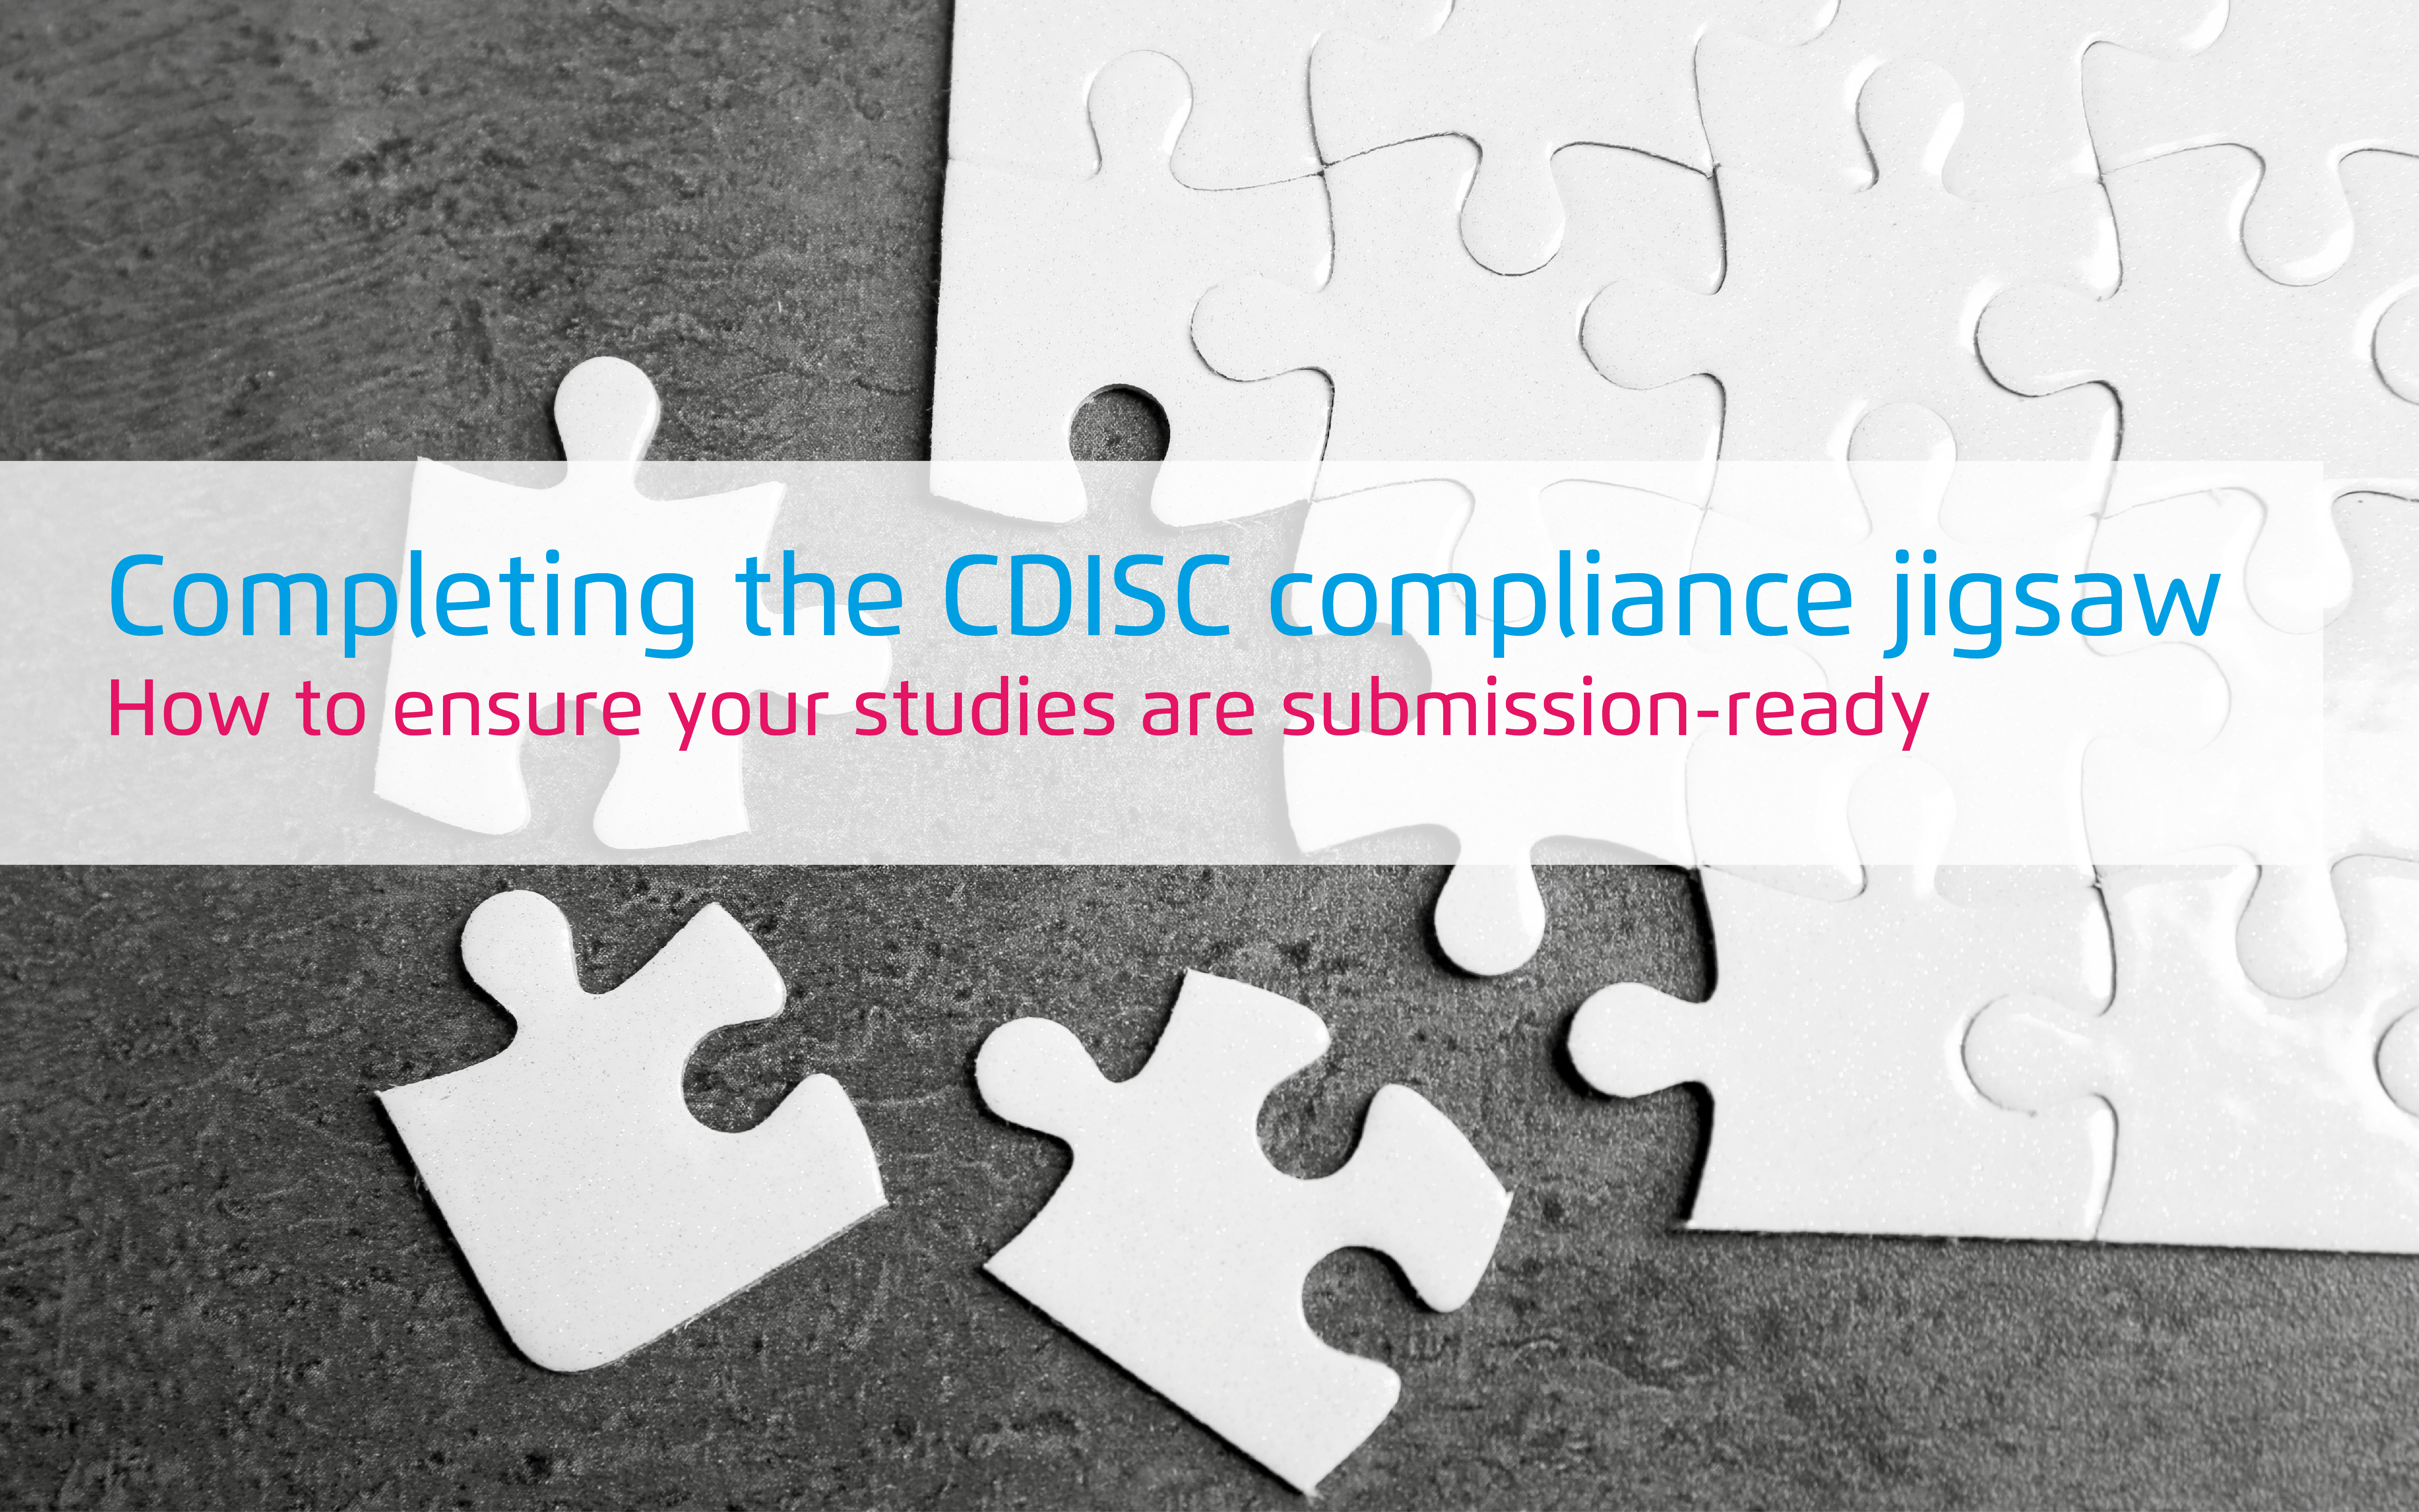 Completing the CDISC compliance jigsaw - ensuring your studies are submission-ready